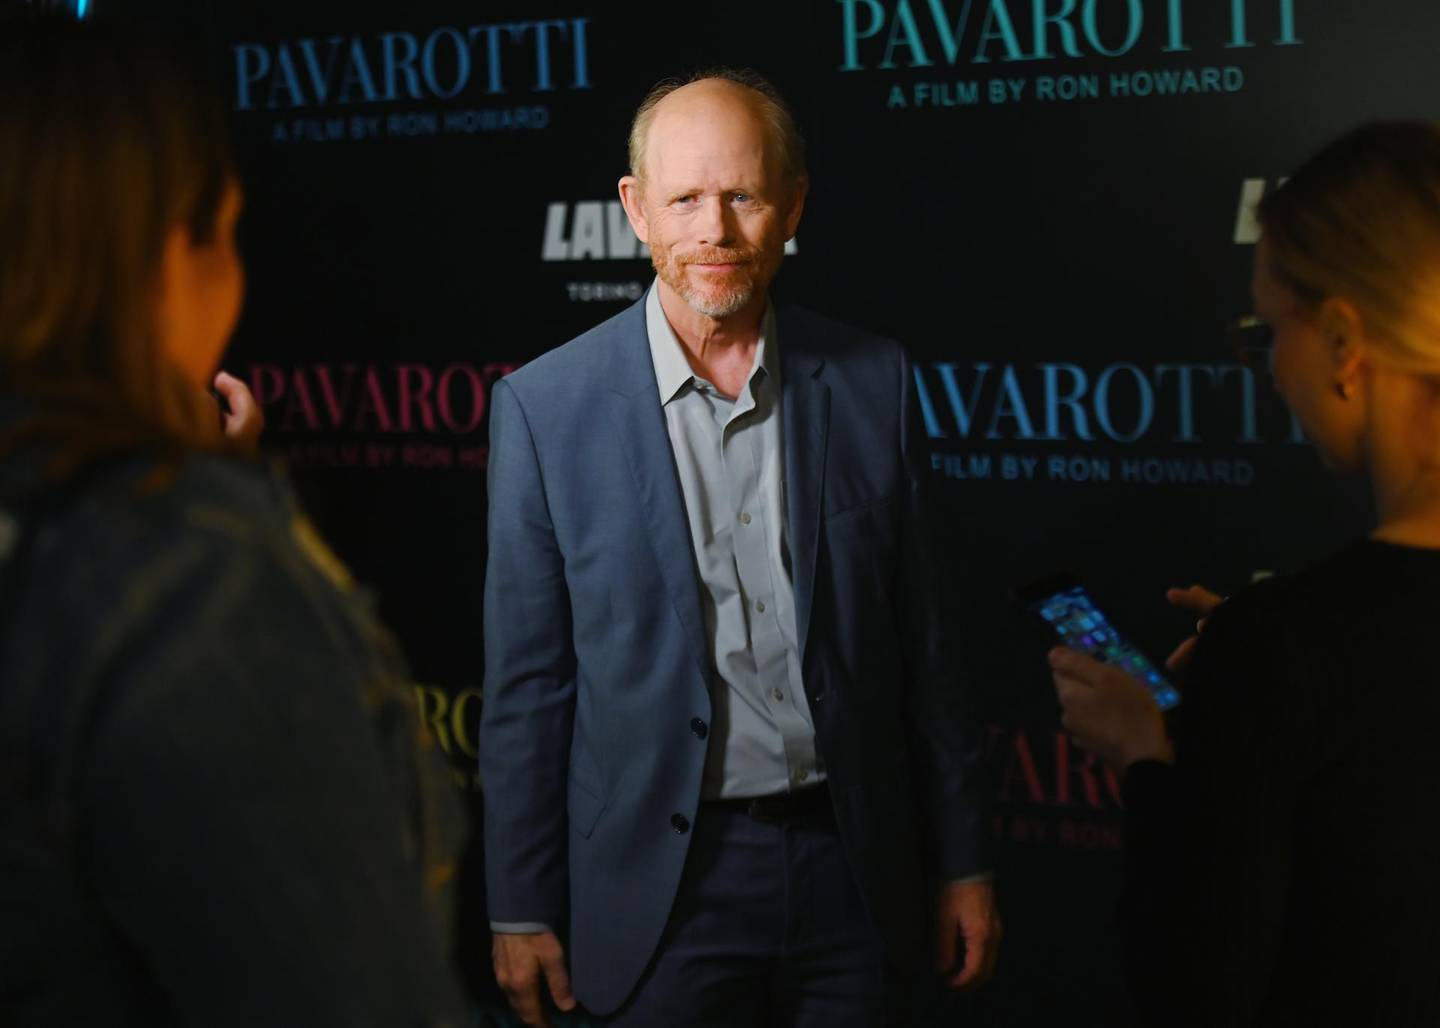 """NEW YORK, NEW YORK - MAY 28: Ron Howard attends the """"Pavarotti"""" New York Screening at iPic Theater on May 28, 2019 in New York City. (Photo by Nicholas Hunt/Getty Images)"""